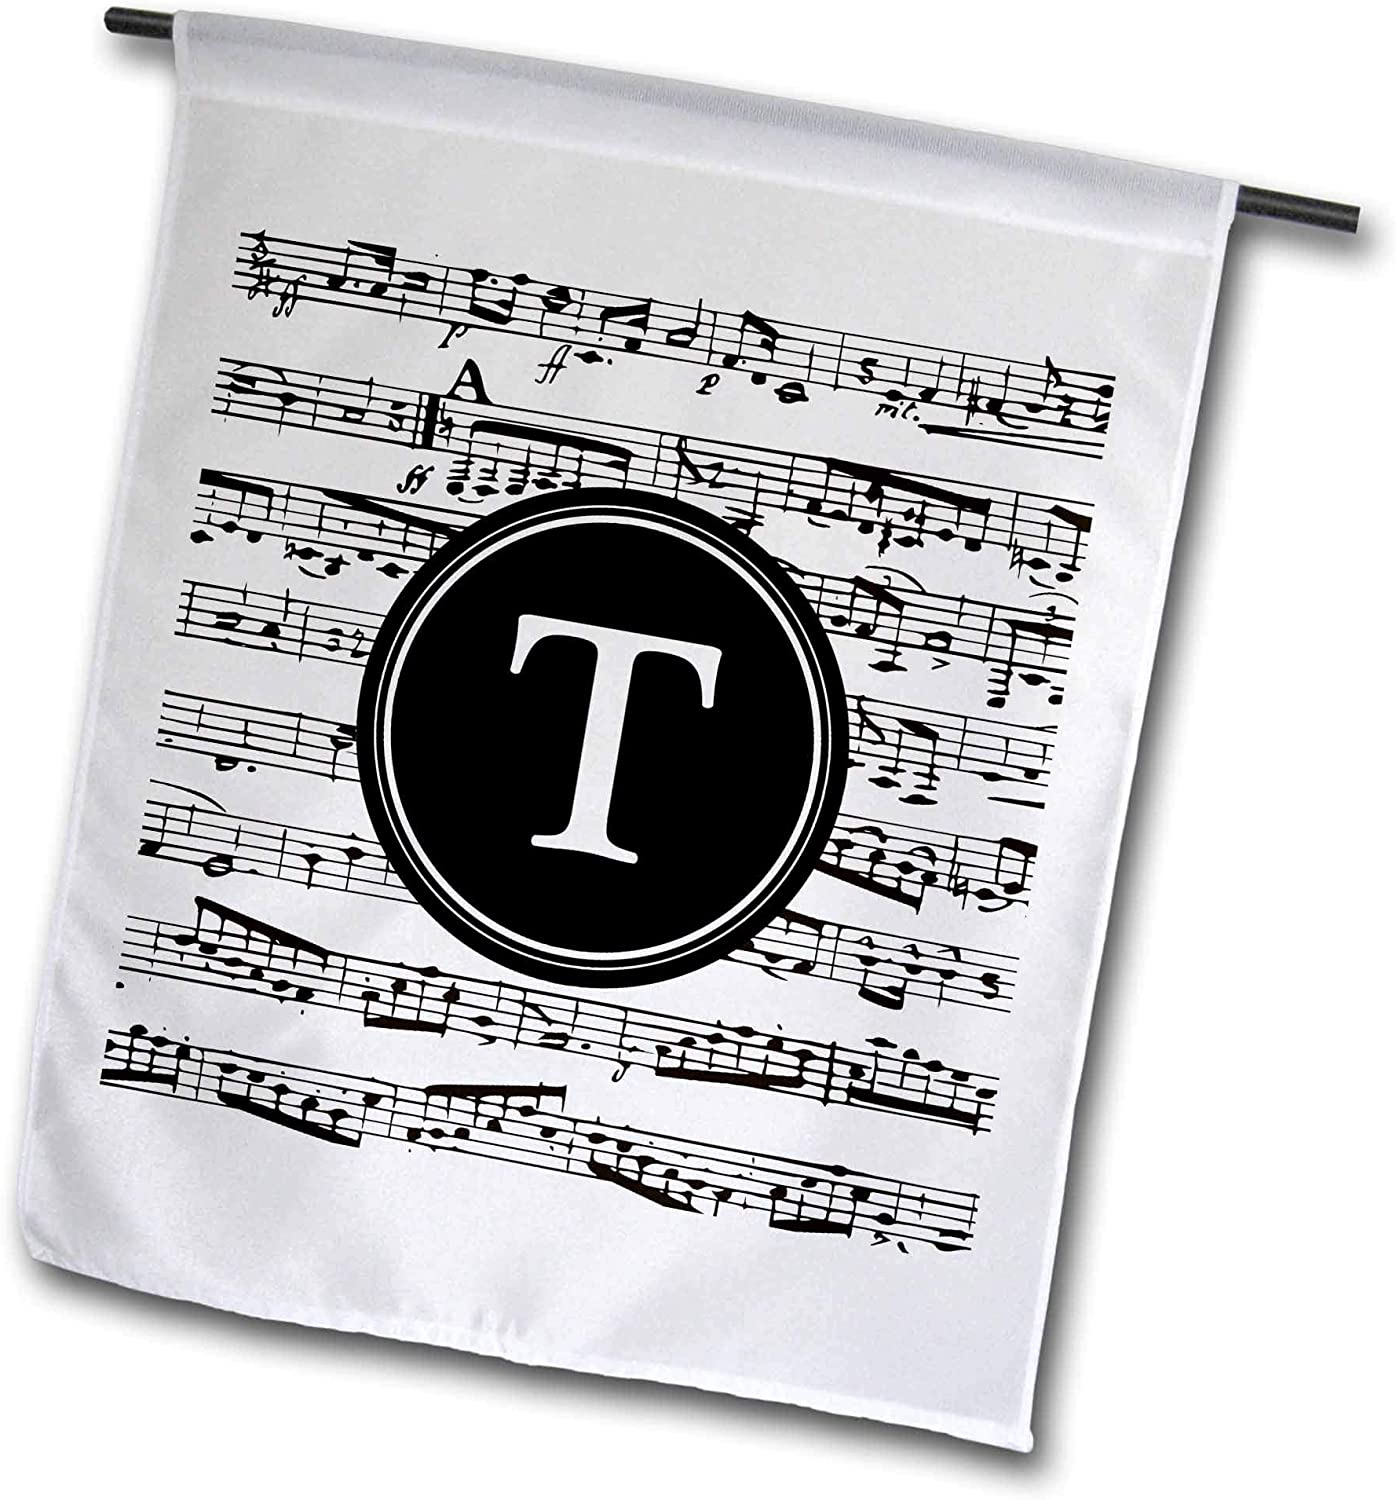 3dRose InspirationzStore - Monograms - Musical Letter T Black and White Music Monogram Personalized Initial T - 12 x 18 inch Garden Flag (fl_316395_1)